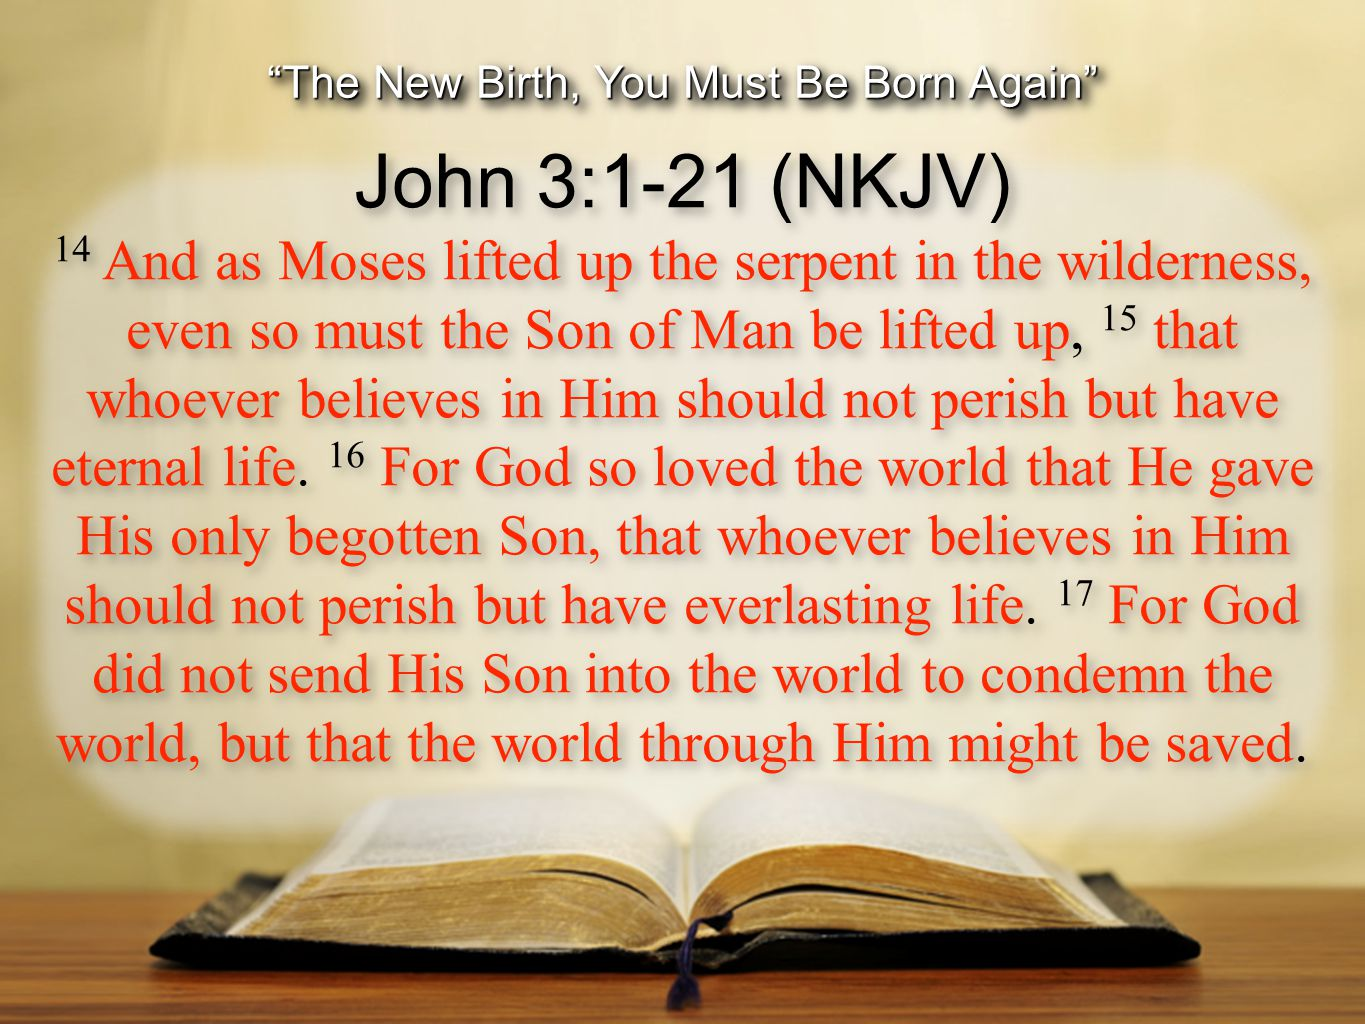 John 3:17 (NKJV) 17 For God did not send His Son into the world to condemn the world, but that the world through Him might be saved.